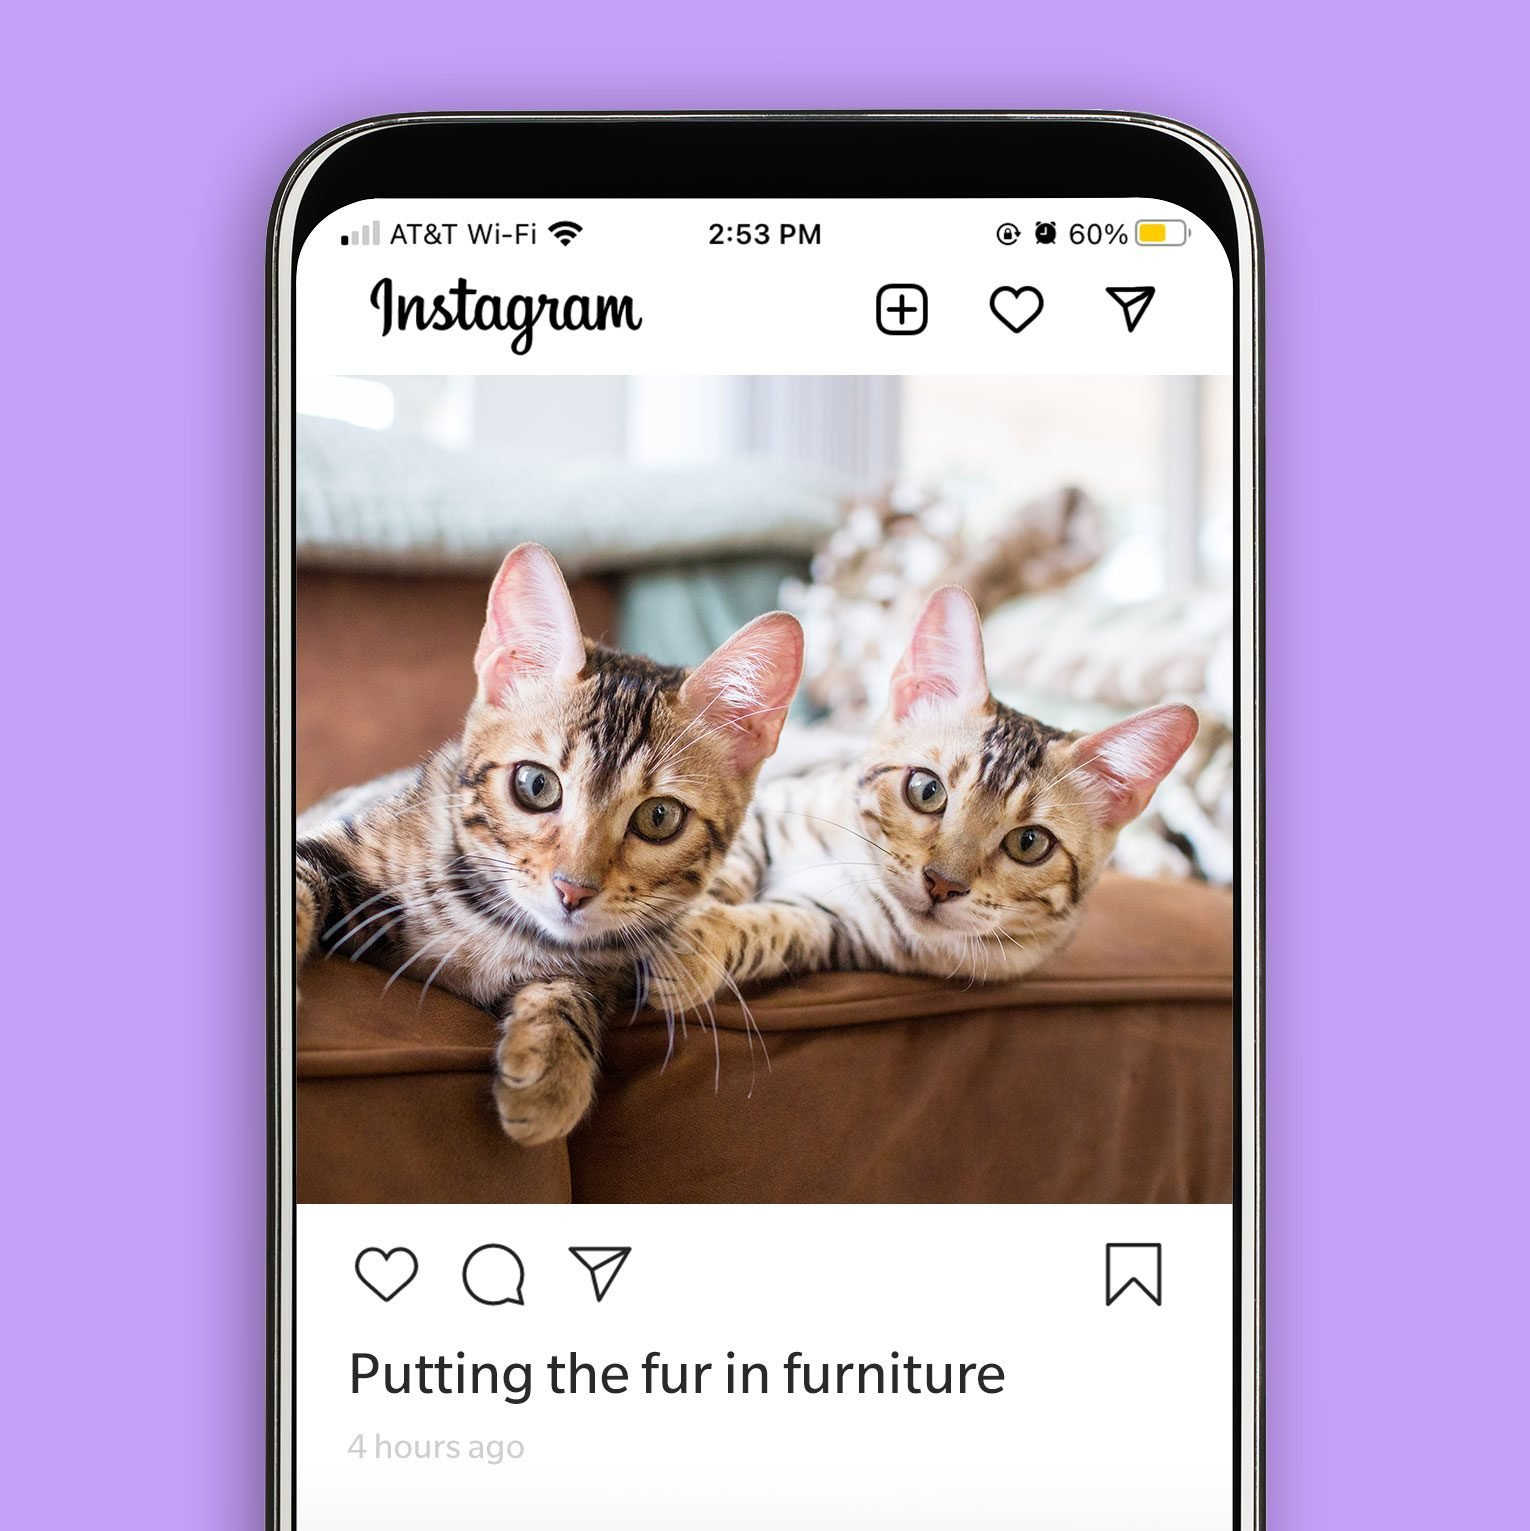 """Instagram post of two cats on a couch with the caption """"putting the fur in furniture."""""""